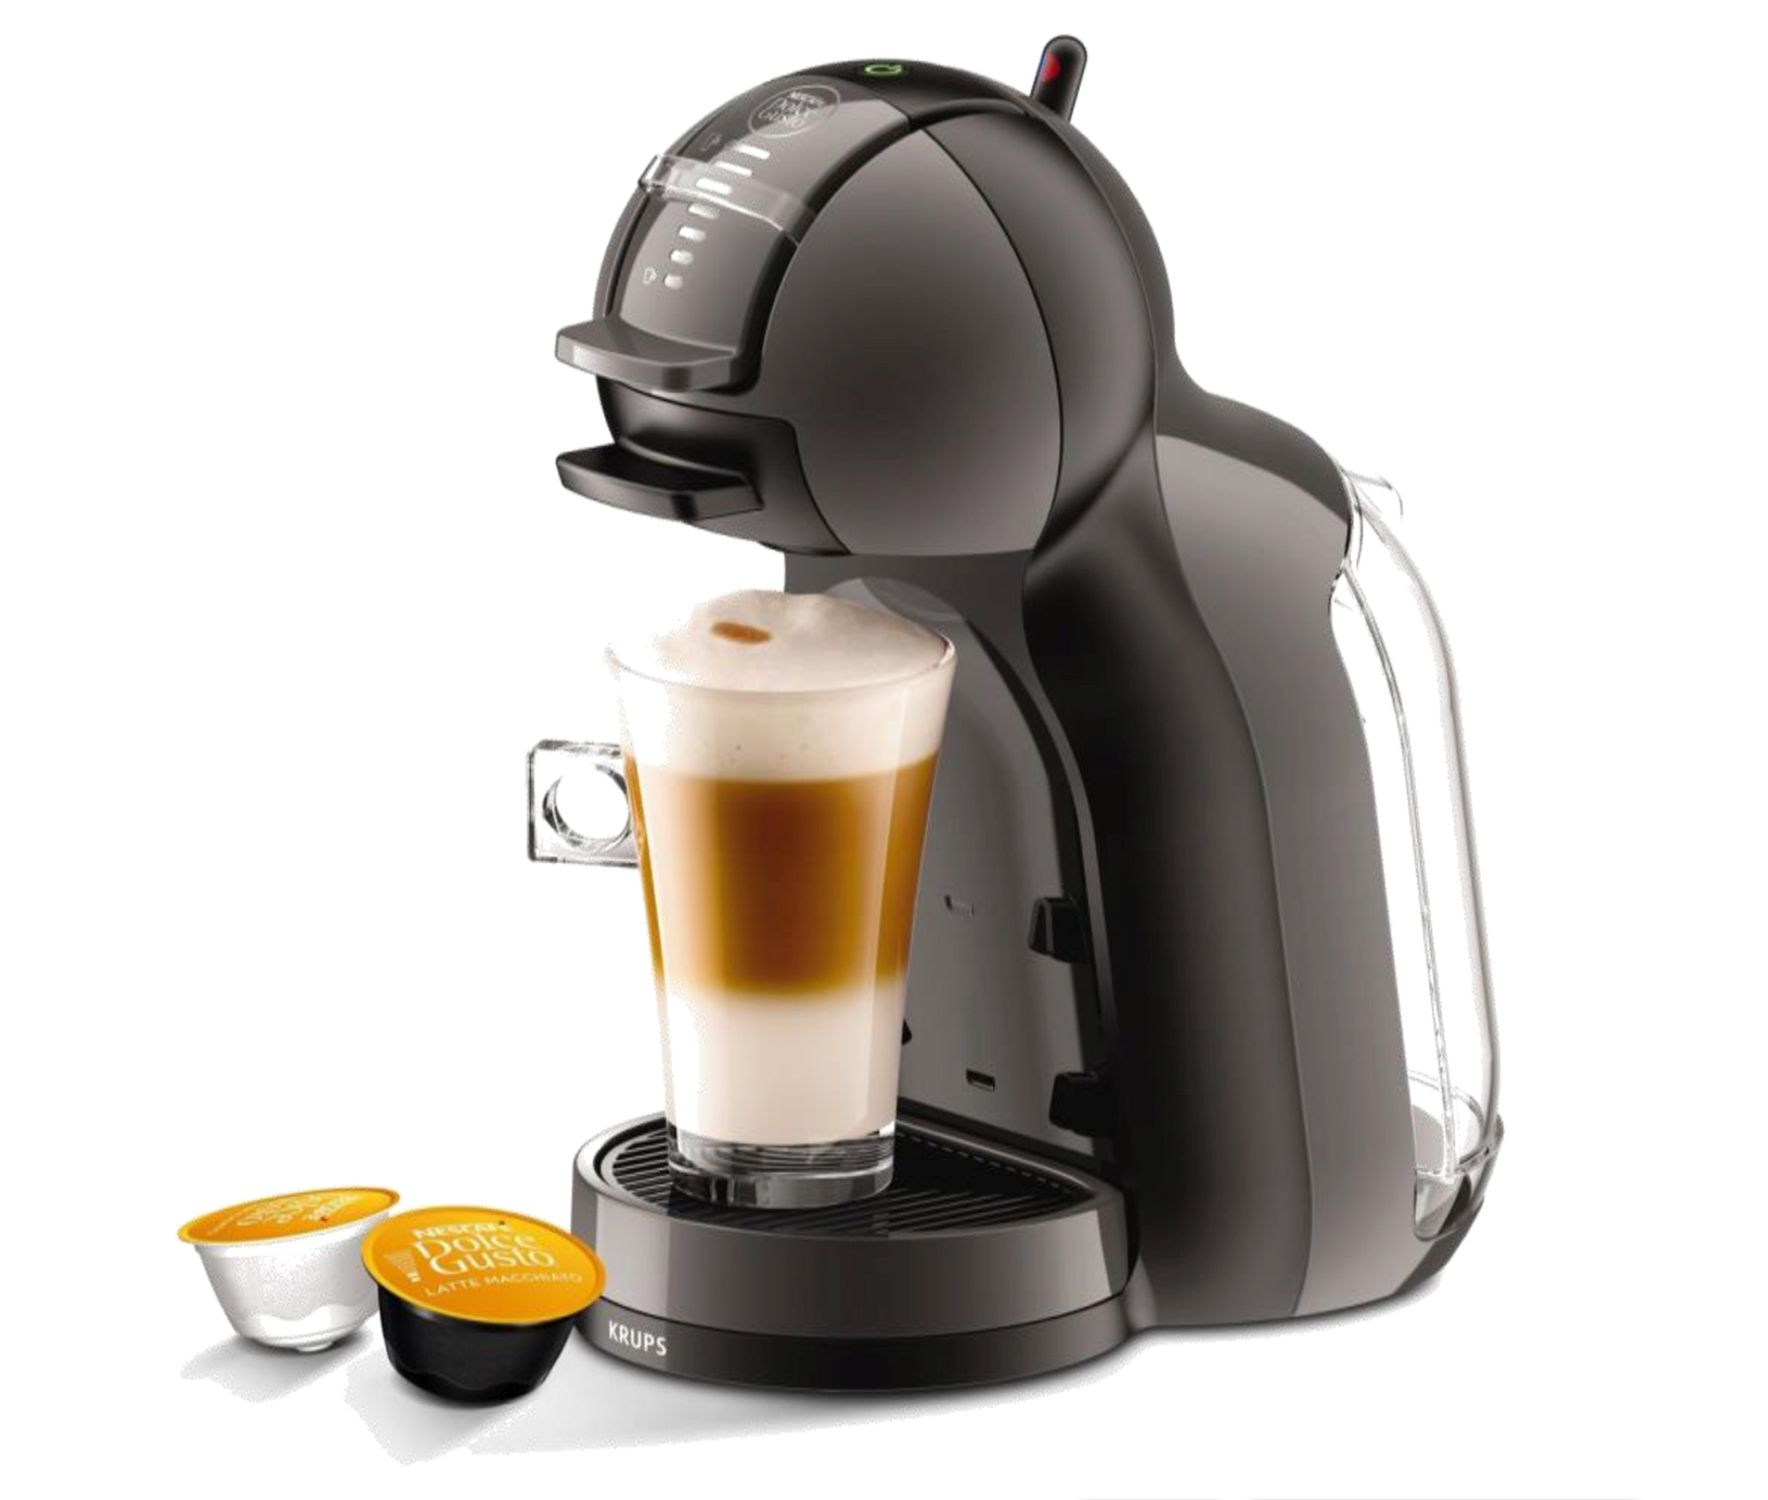 krups nescafe dolce gusto mini me kapsel kaffeemaschine. Black Bedroom Furniture Sets. Home Design Ideas